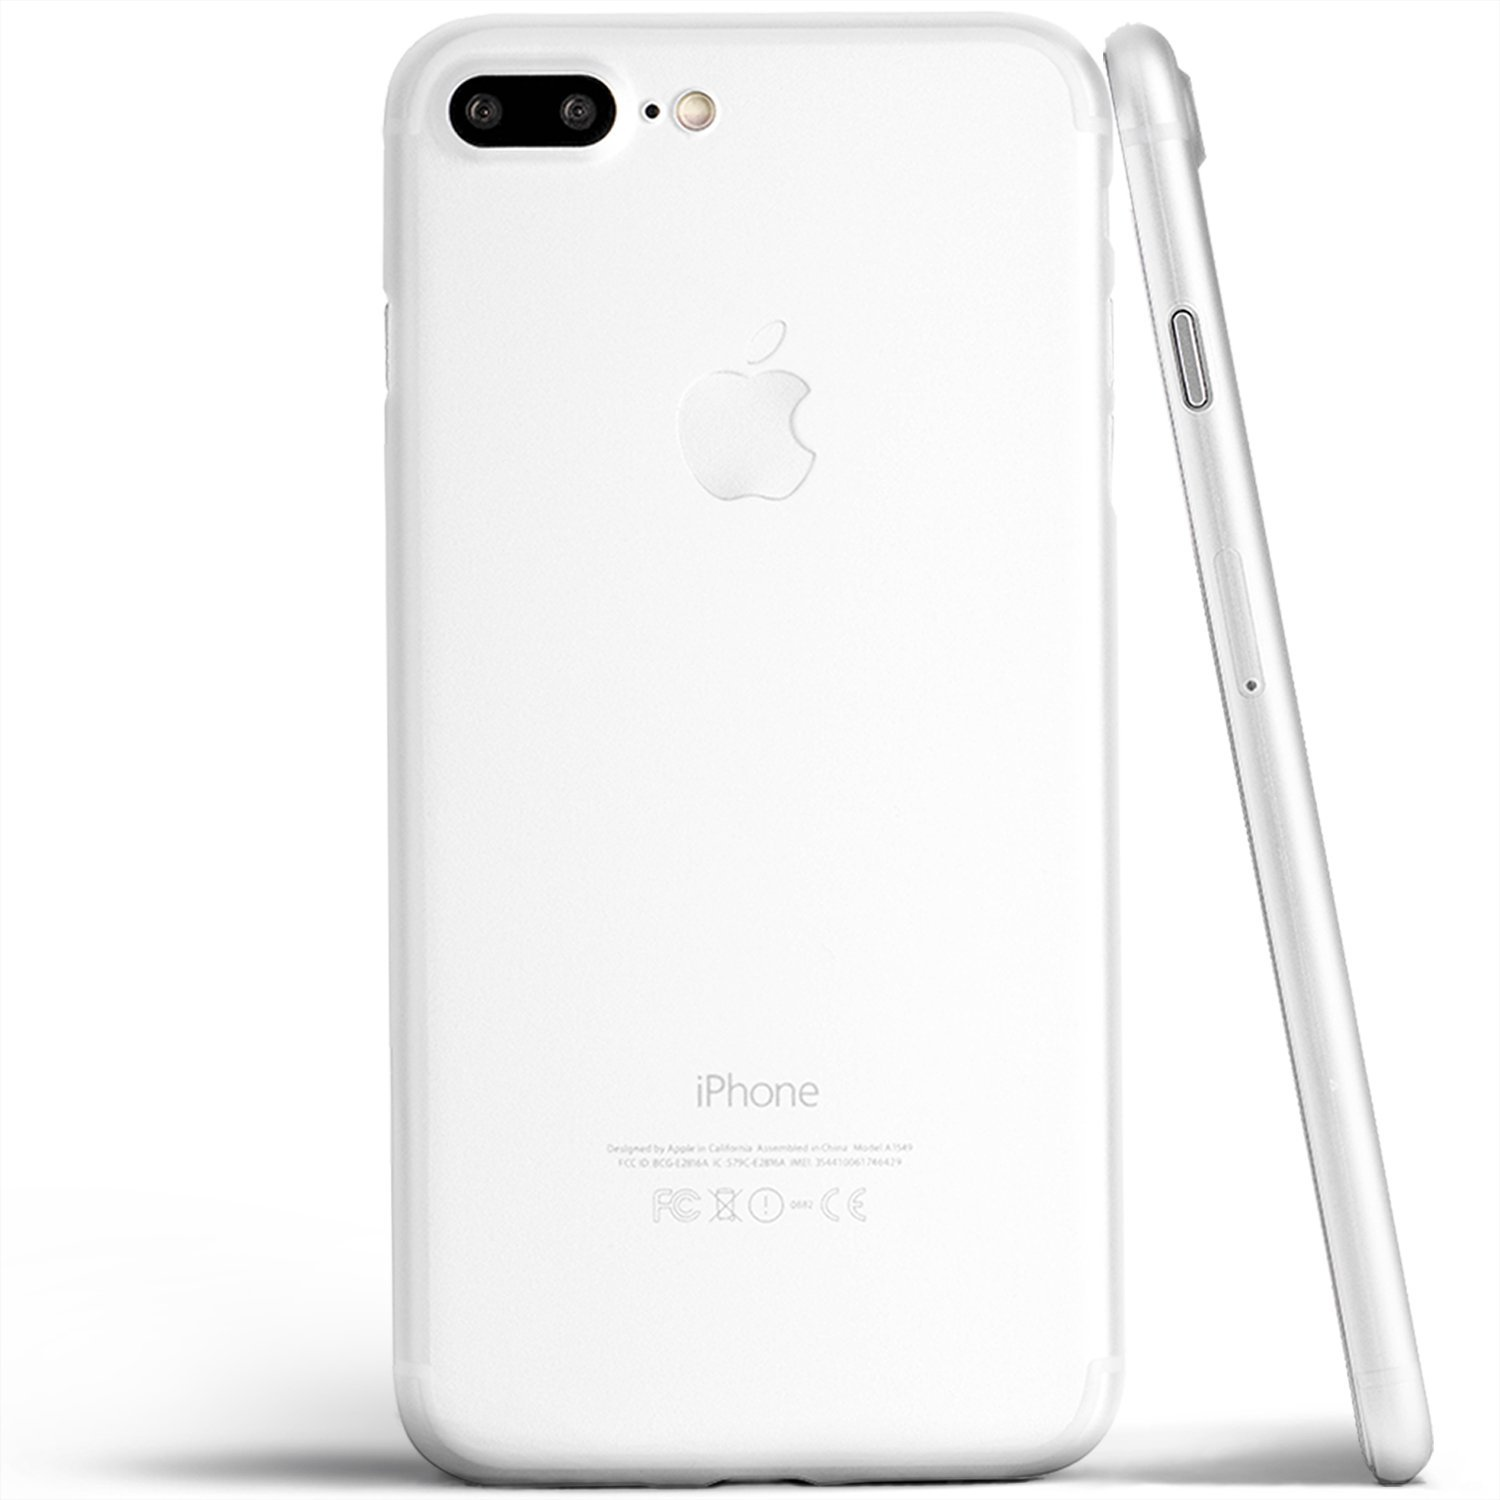 iphone 8 plus cases walmart comproduct image thin iphone 8 plus case, thinnest cover ultra slim minimal for apple iphone 8